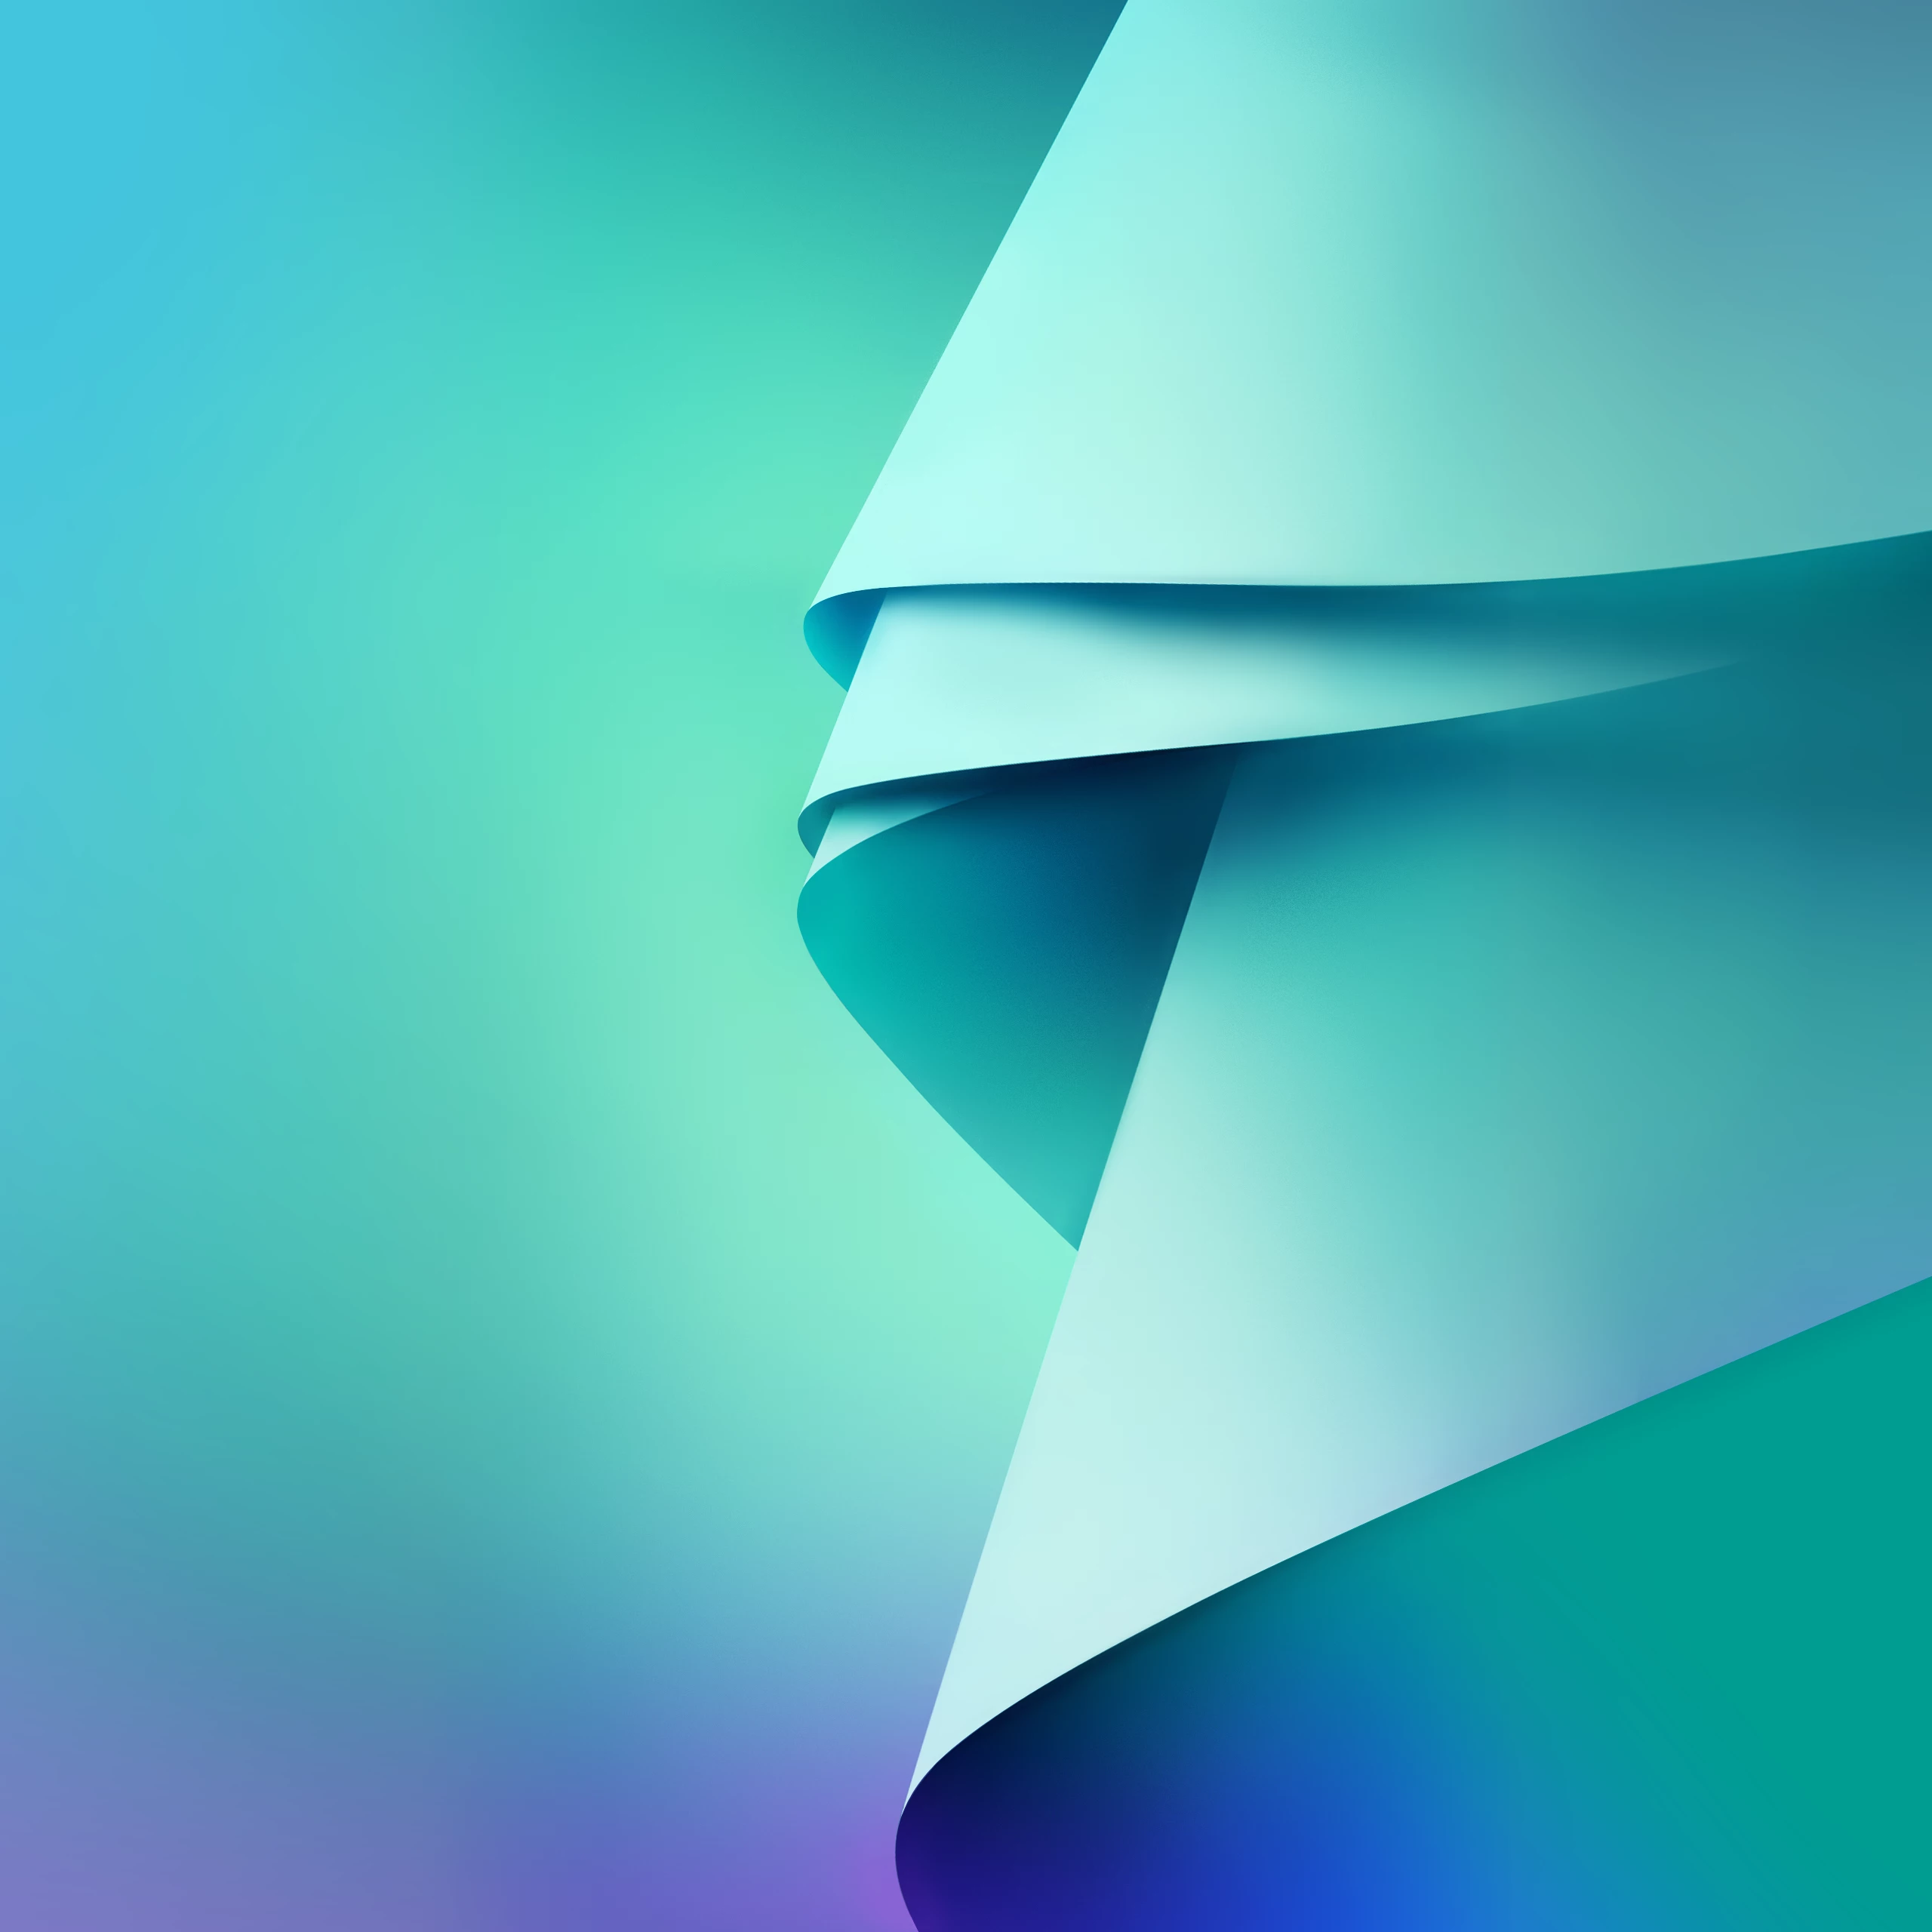 Samsung Galaxy Note 5 Stock Wallpapers 4